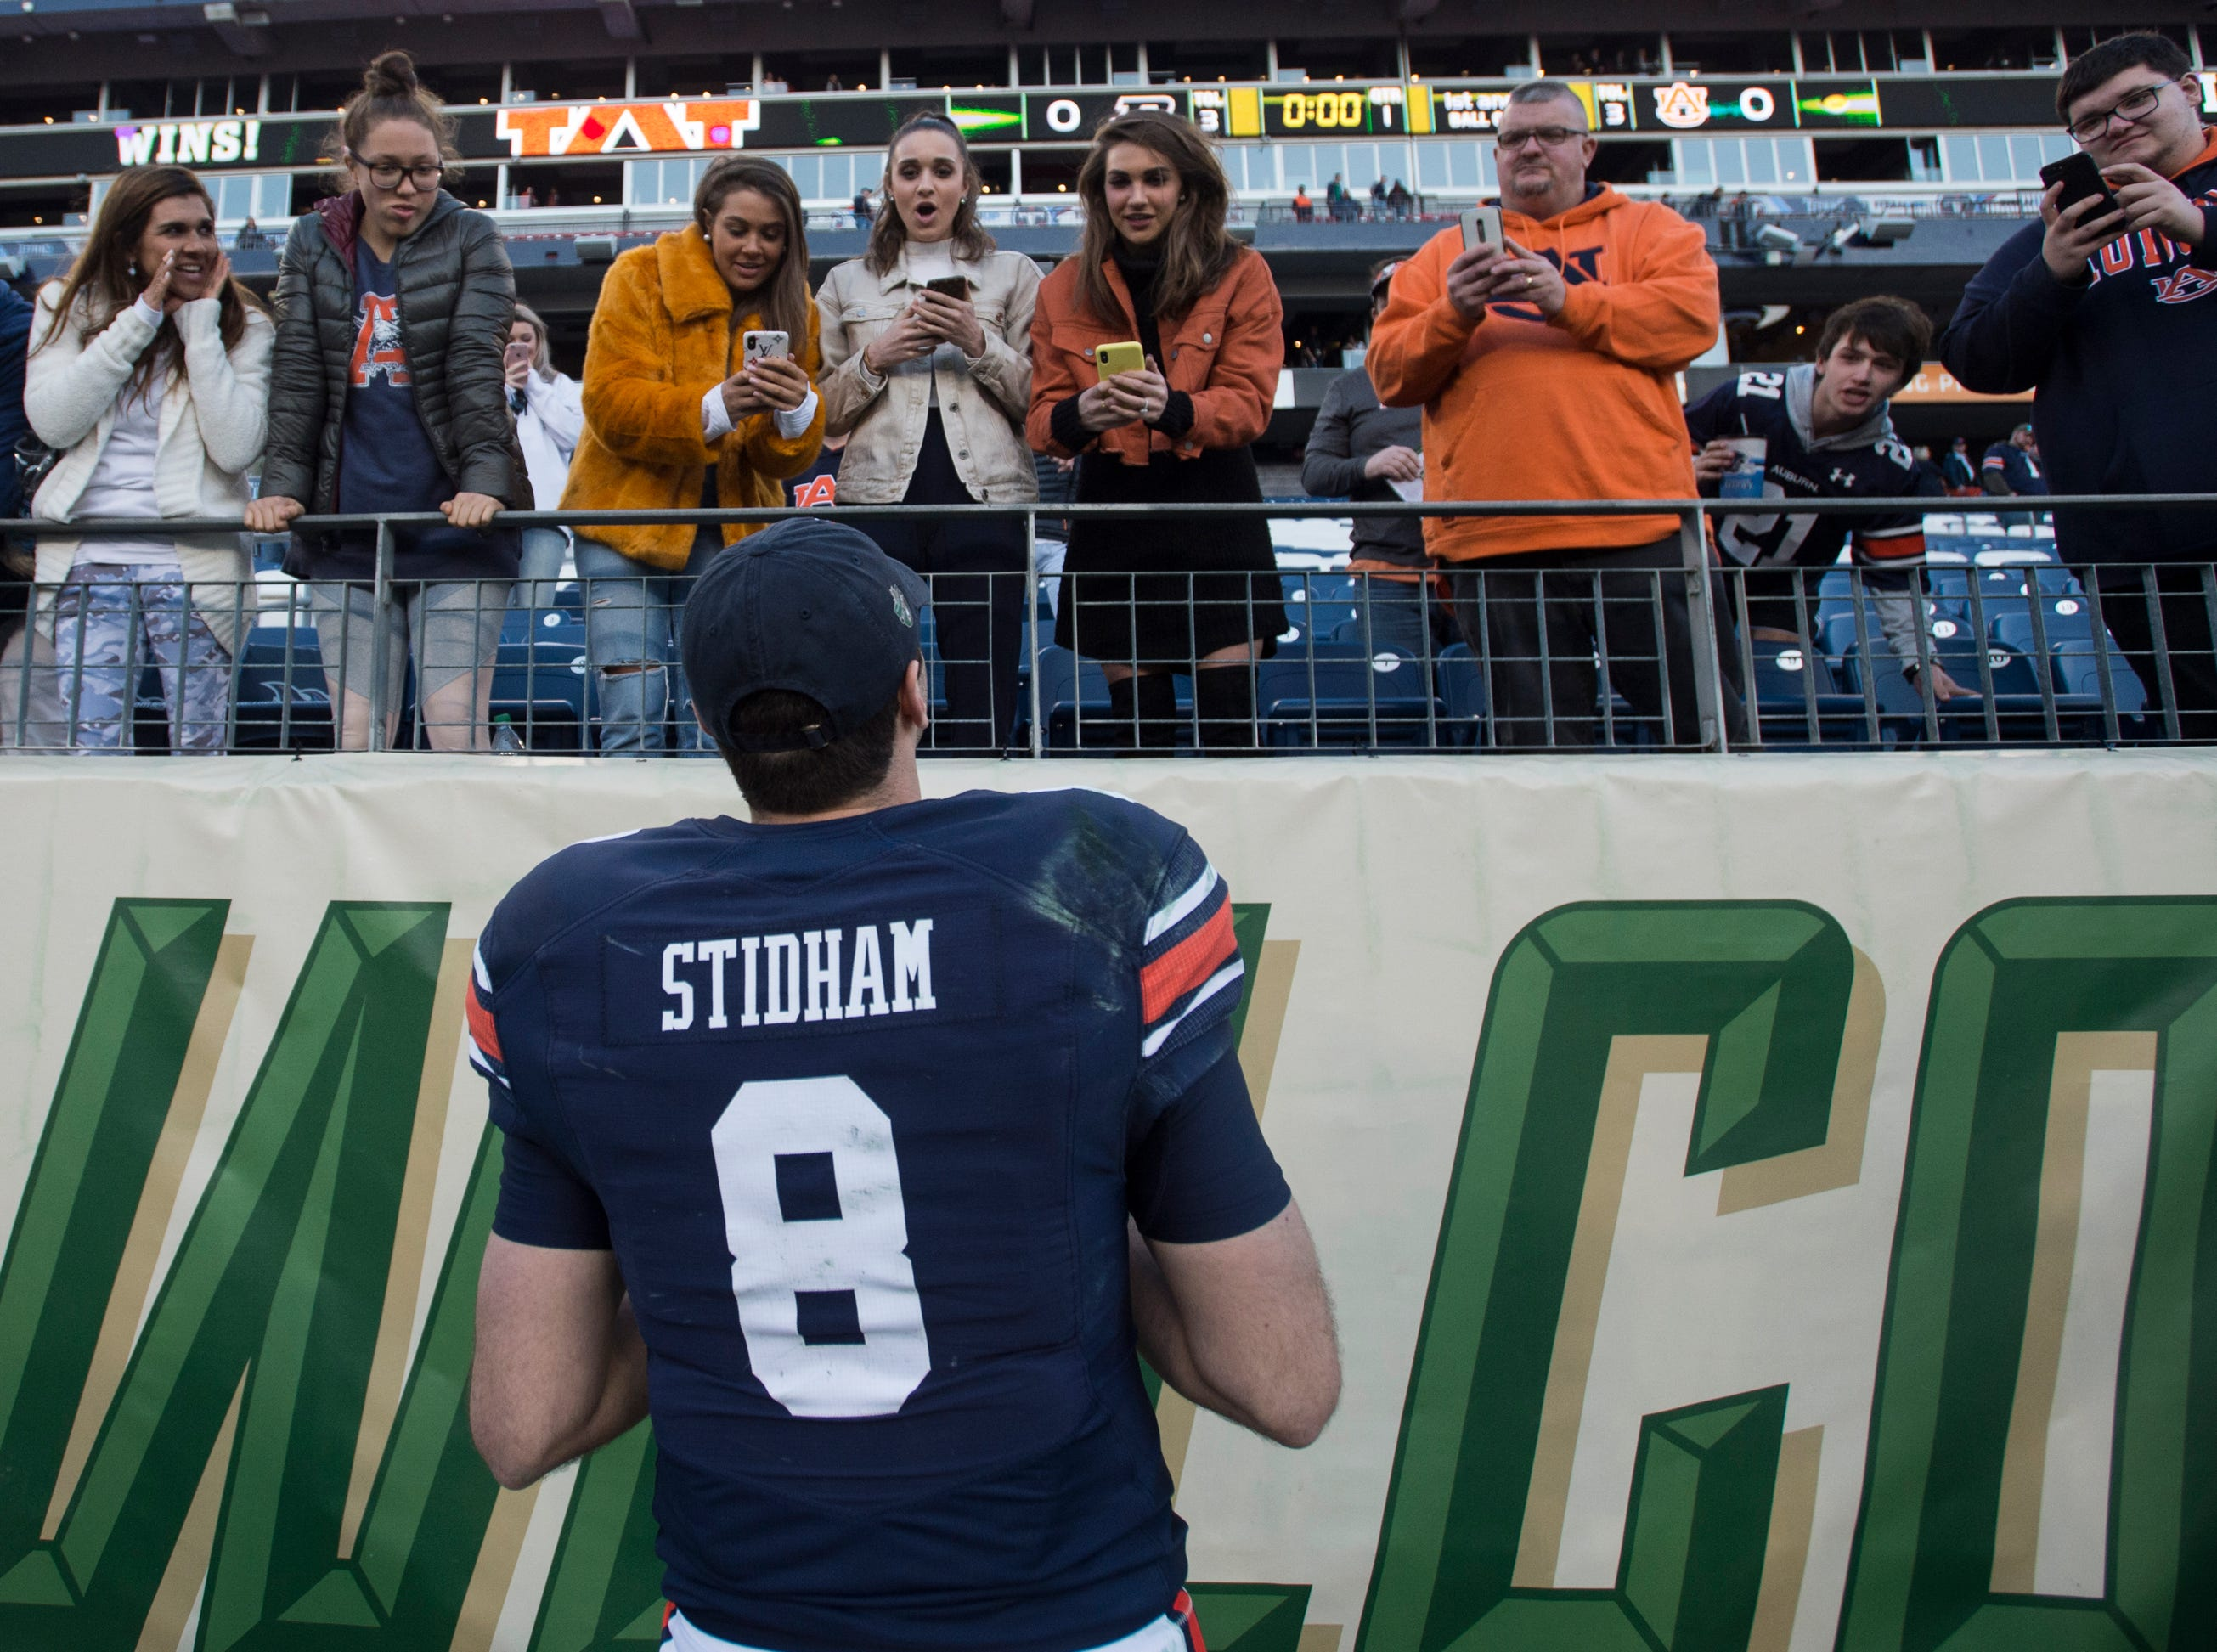 Auburn quarterback Jarrett Stidham (8) talks with family and fans at the end of the game after the Music City Bowl at Nissan Stadium in Nashville, Tenn., on Friday, Dec. 28, 2018. Auburn defeated Purdue 63-14.